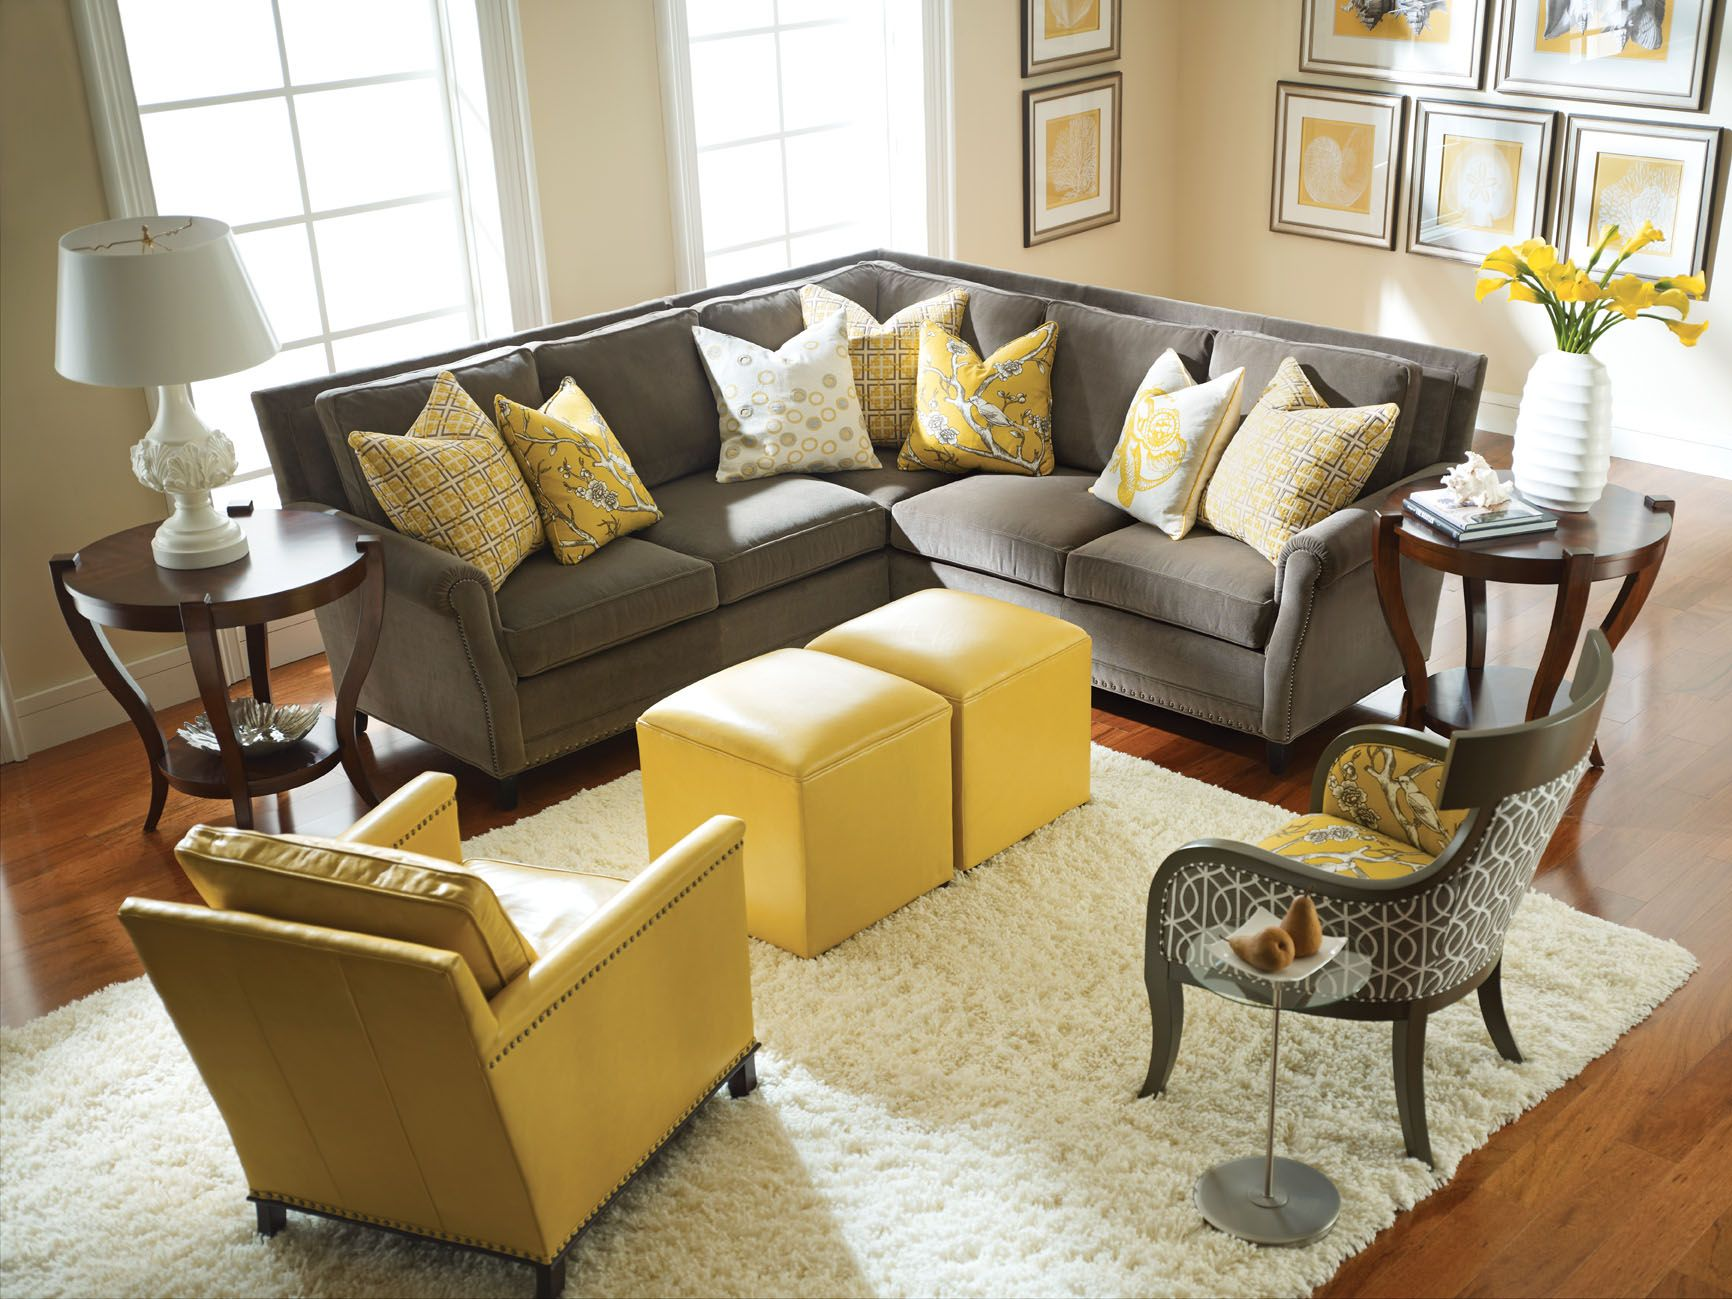 Yellow and gray rooms deborahwoodmurphy